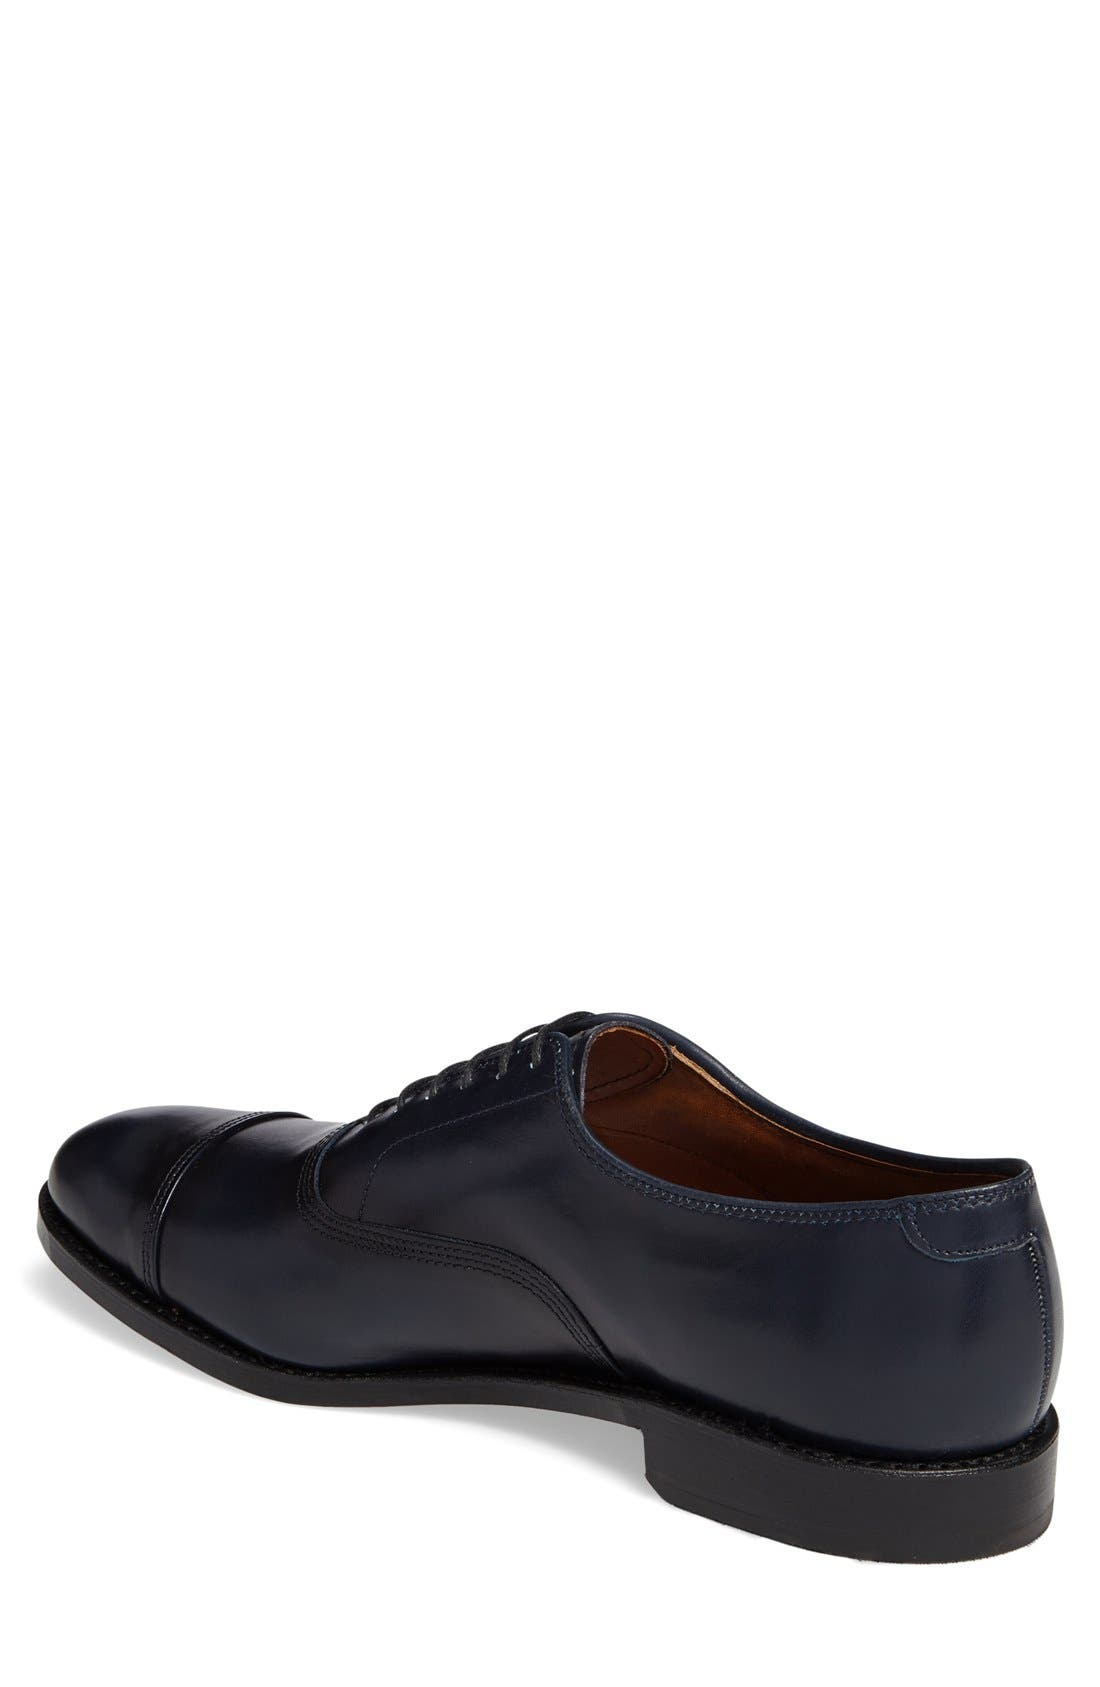 Alternate Image 3  - Allen Edmonds Park Avenue Oxford (Men)